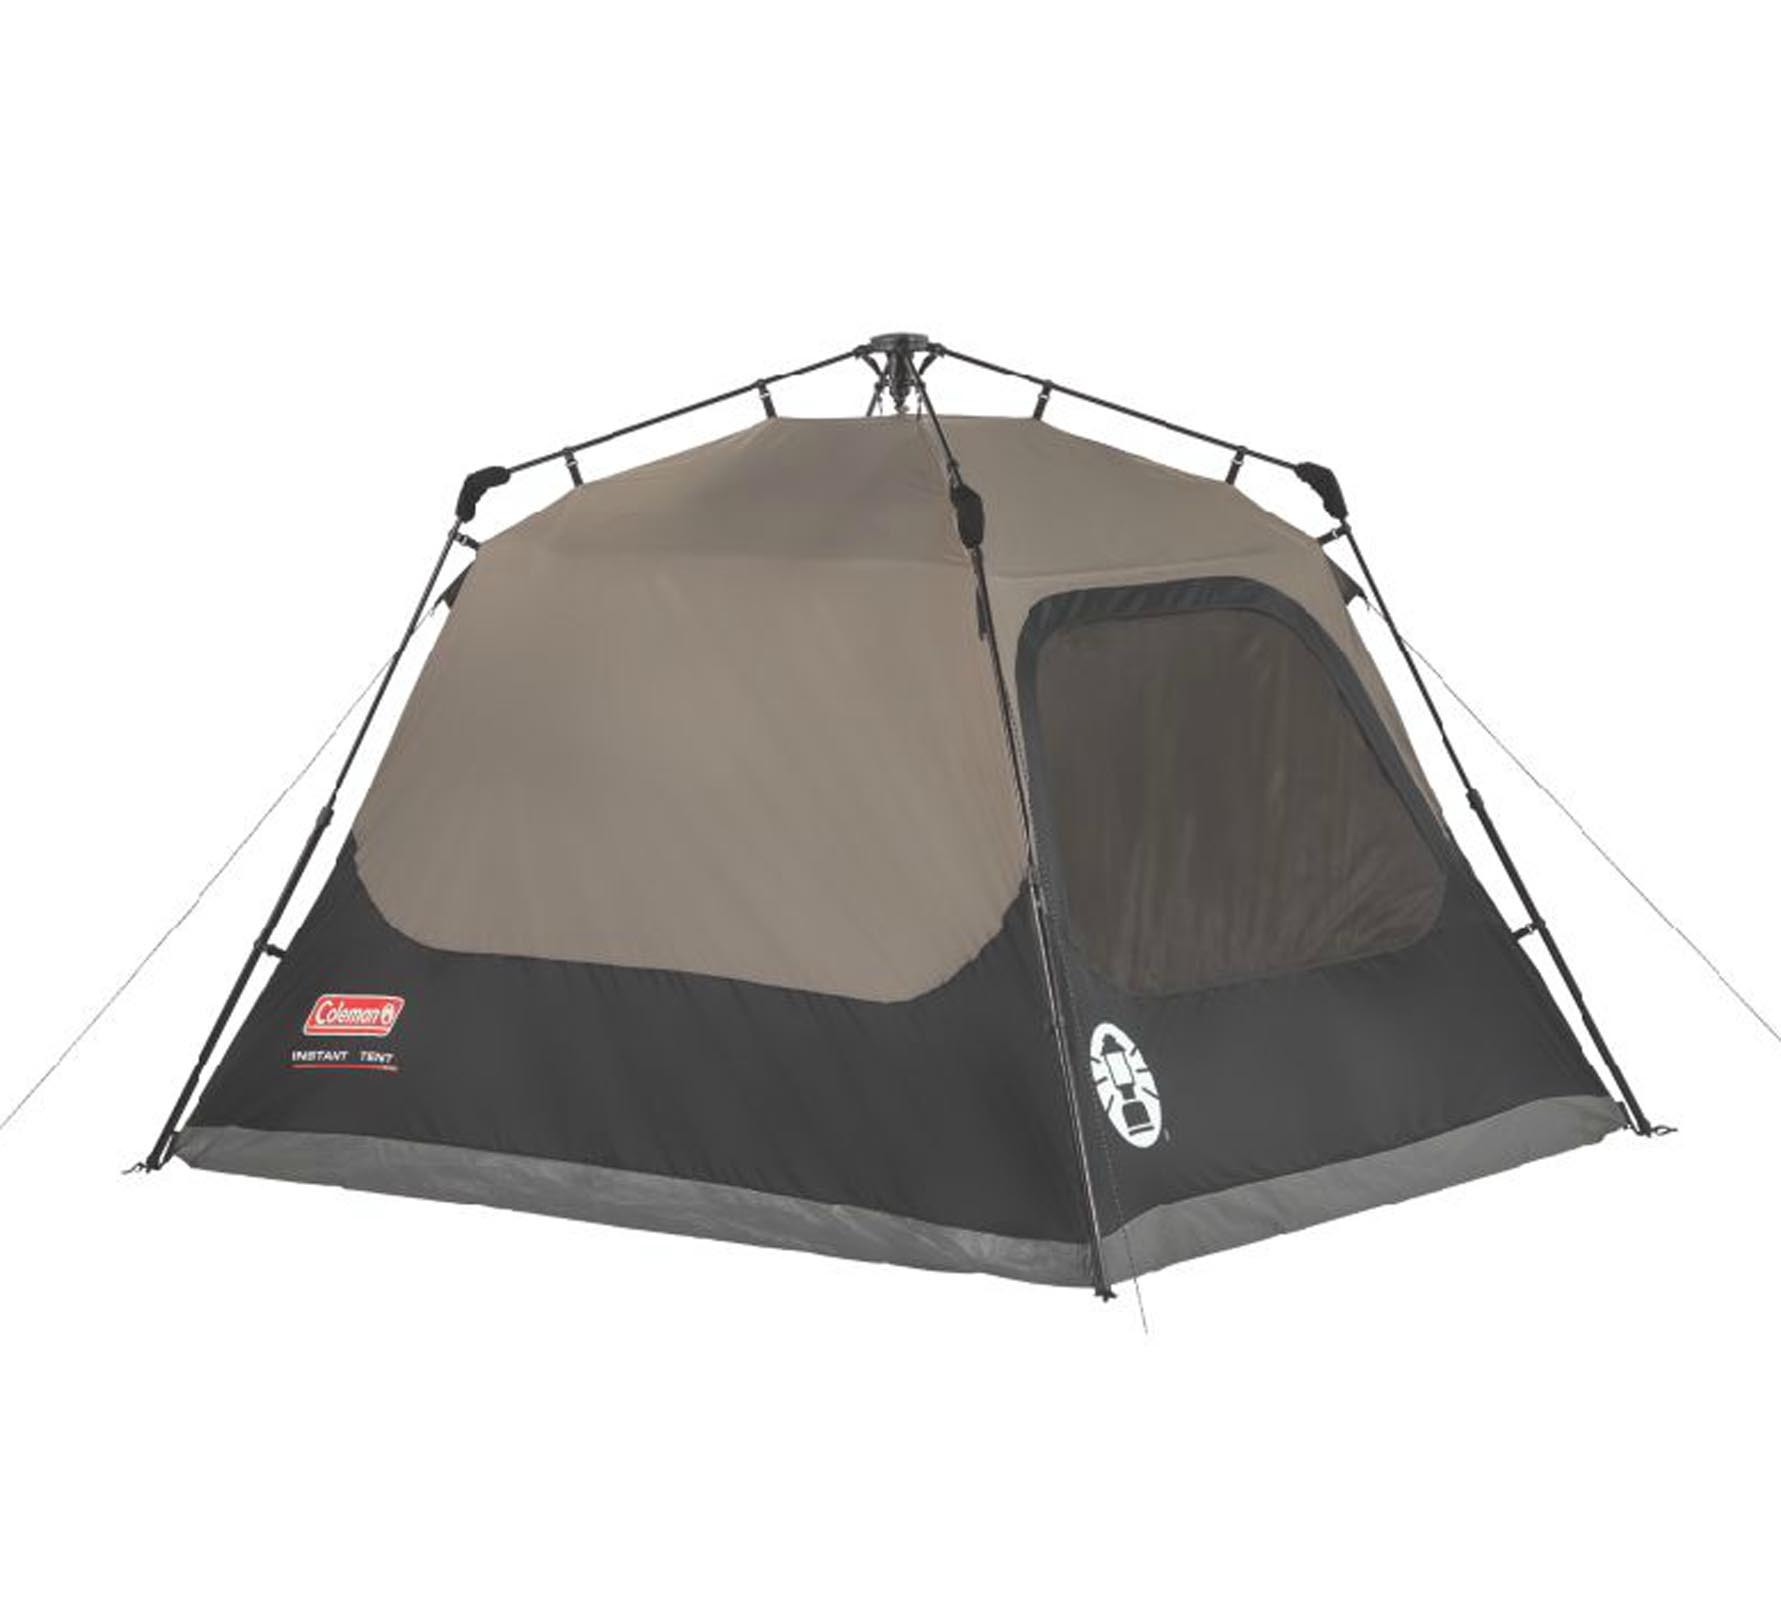 Coleman Outdoor Family Camping 4 Person Instant Tent 8 X 7